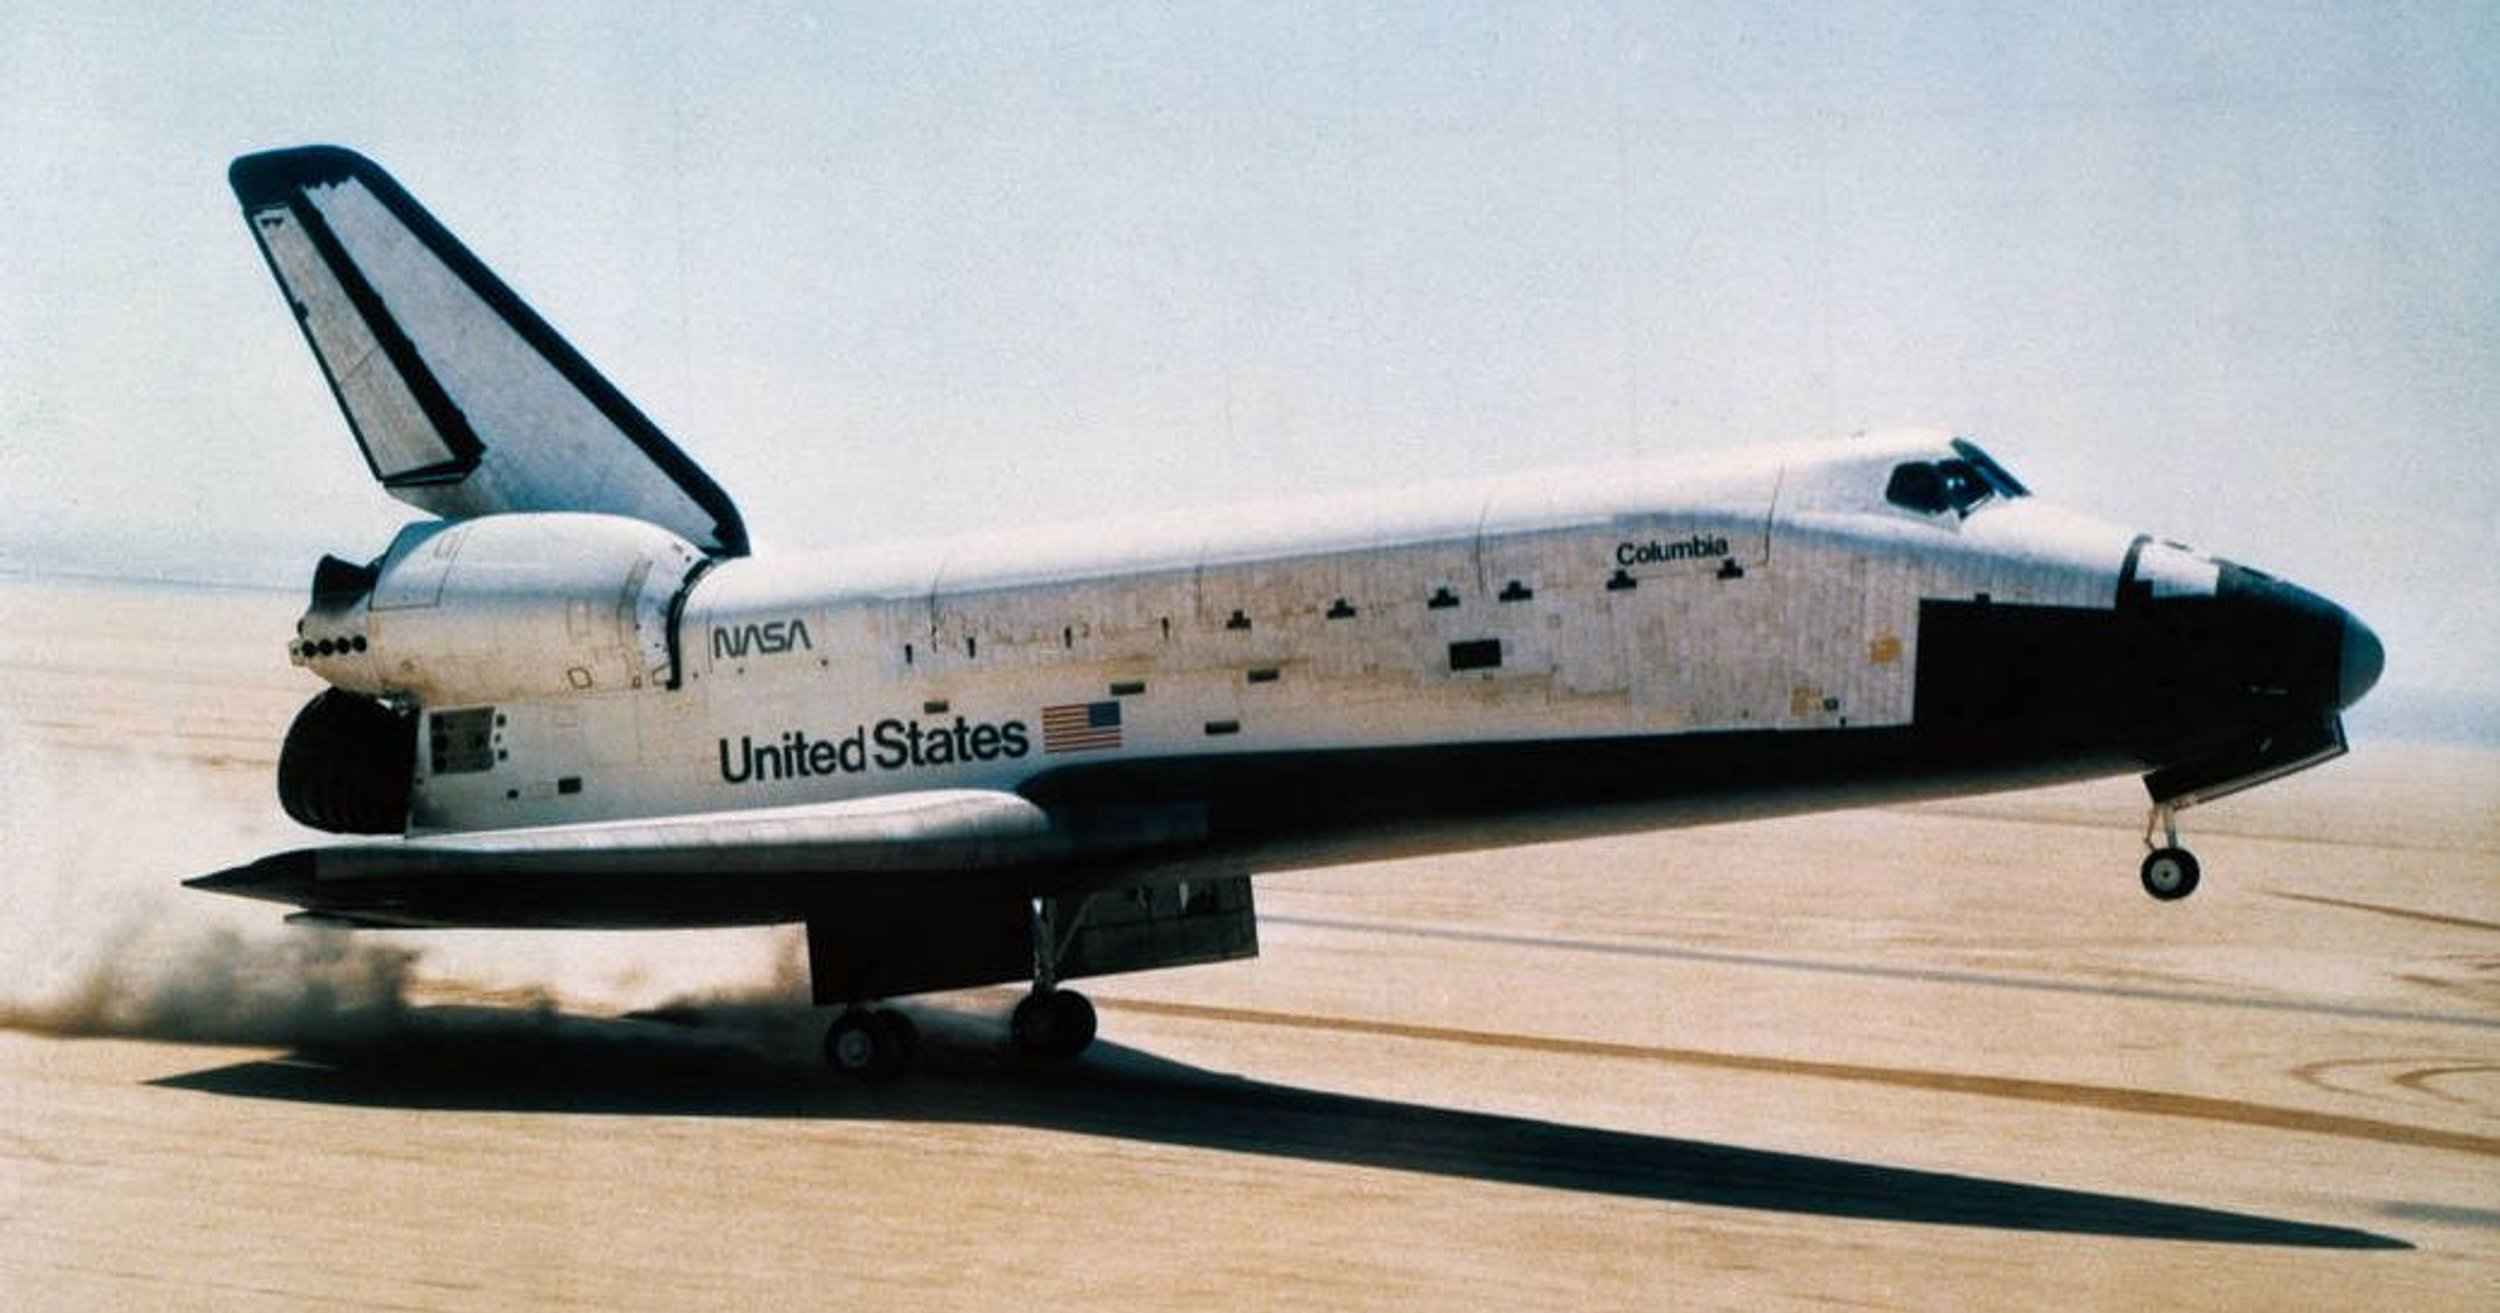 Space Shuttle  Columbia 's first landing at NASA's Dryden Flight Research Center in 1981. (Source: National Naval Aviation Museum)